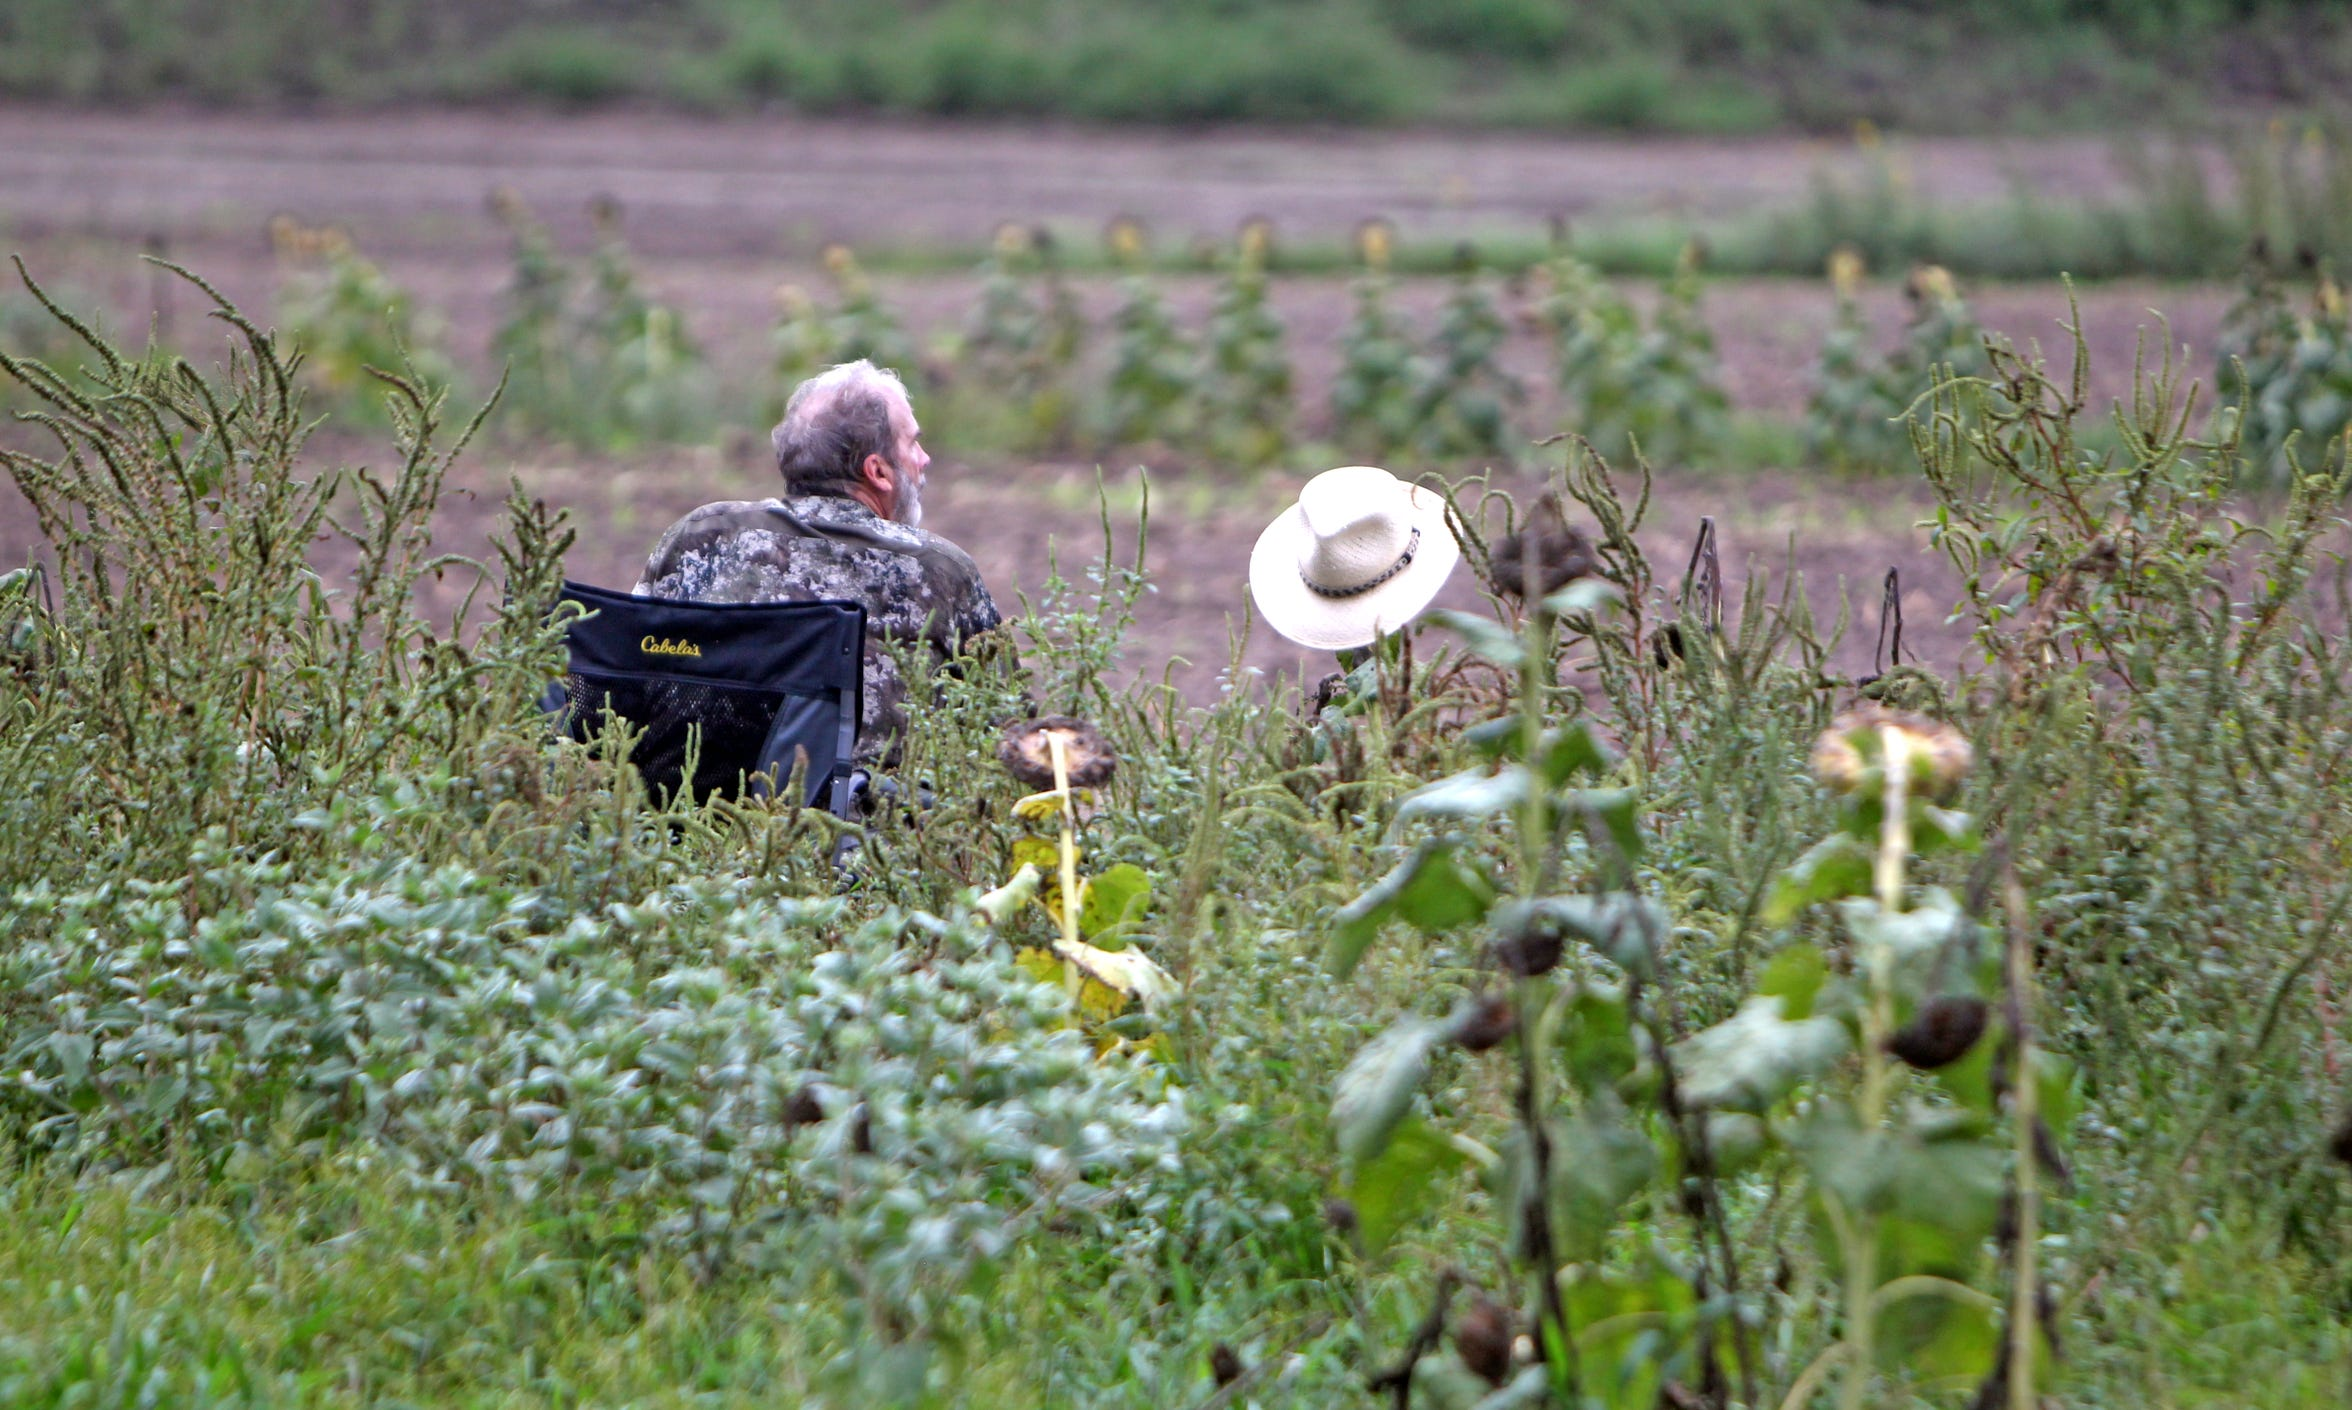 David Wilkinson awaits the next flight of doves in a sunflower field along the Rio Grande.